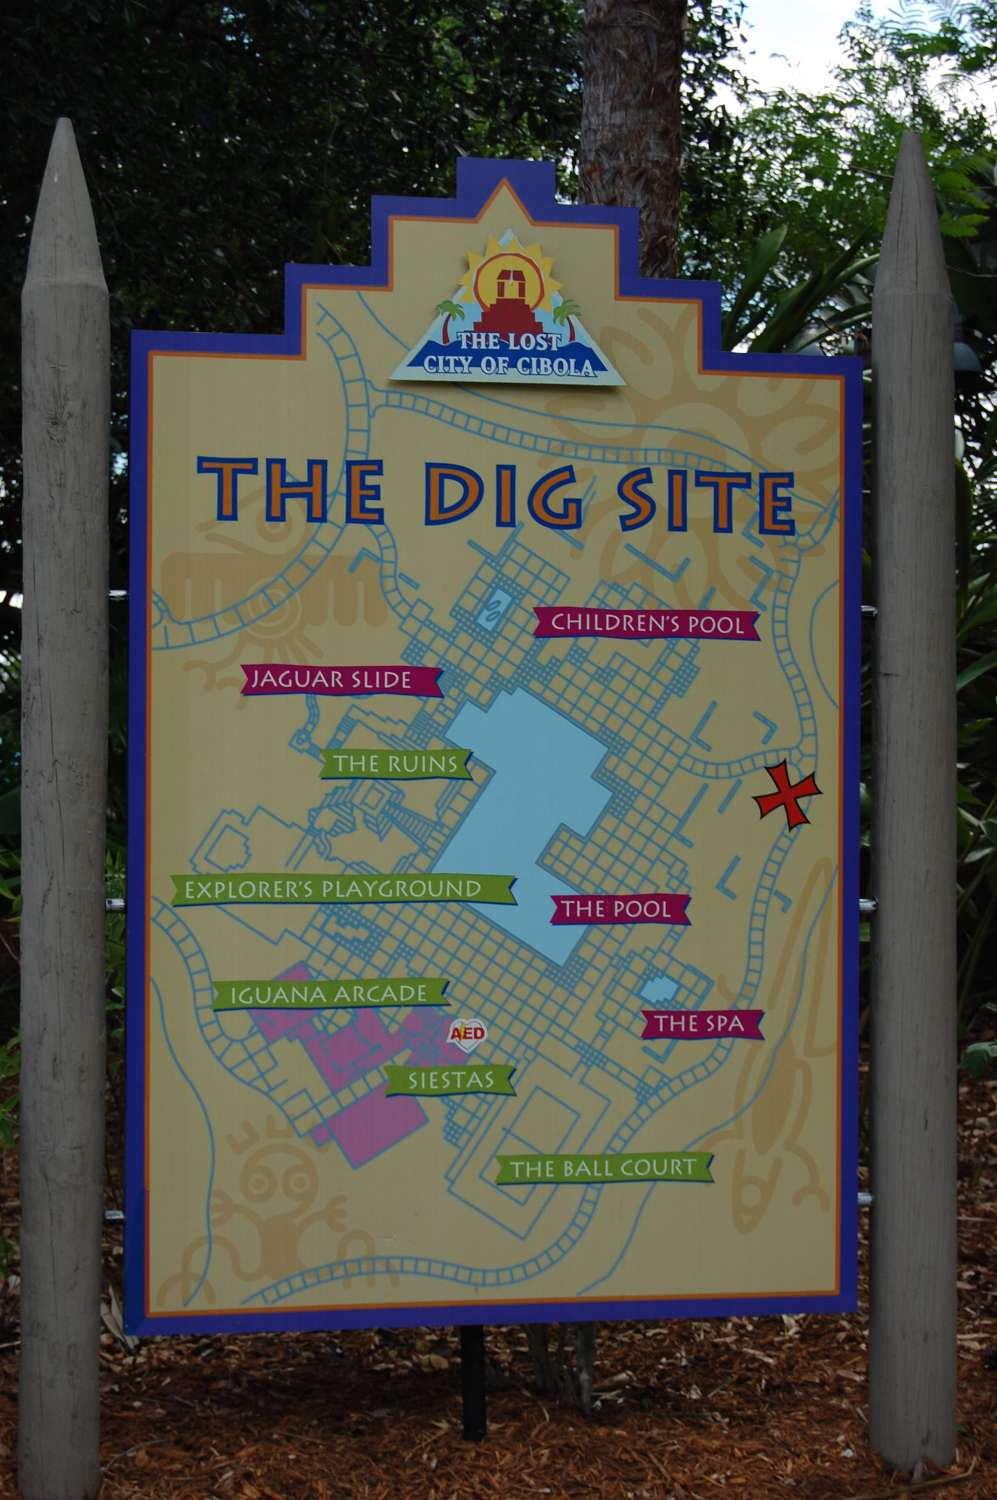 coronado-springs-021-The-Dig-Site-Feature-Pool-Sign.JPG